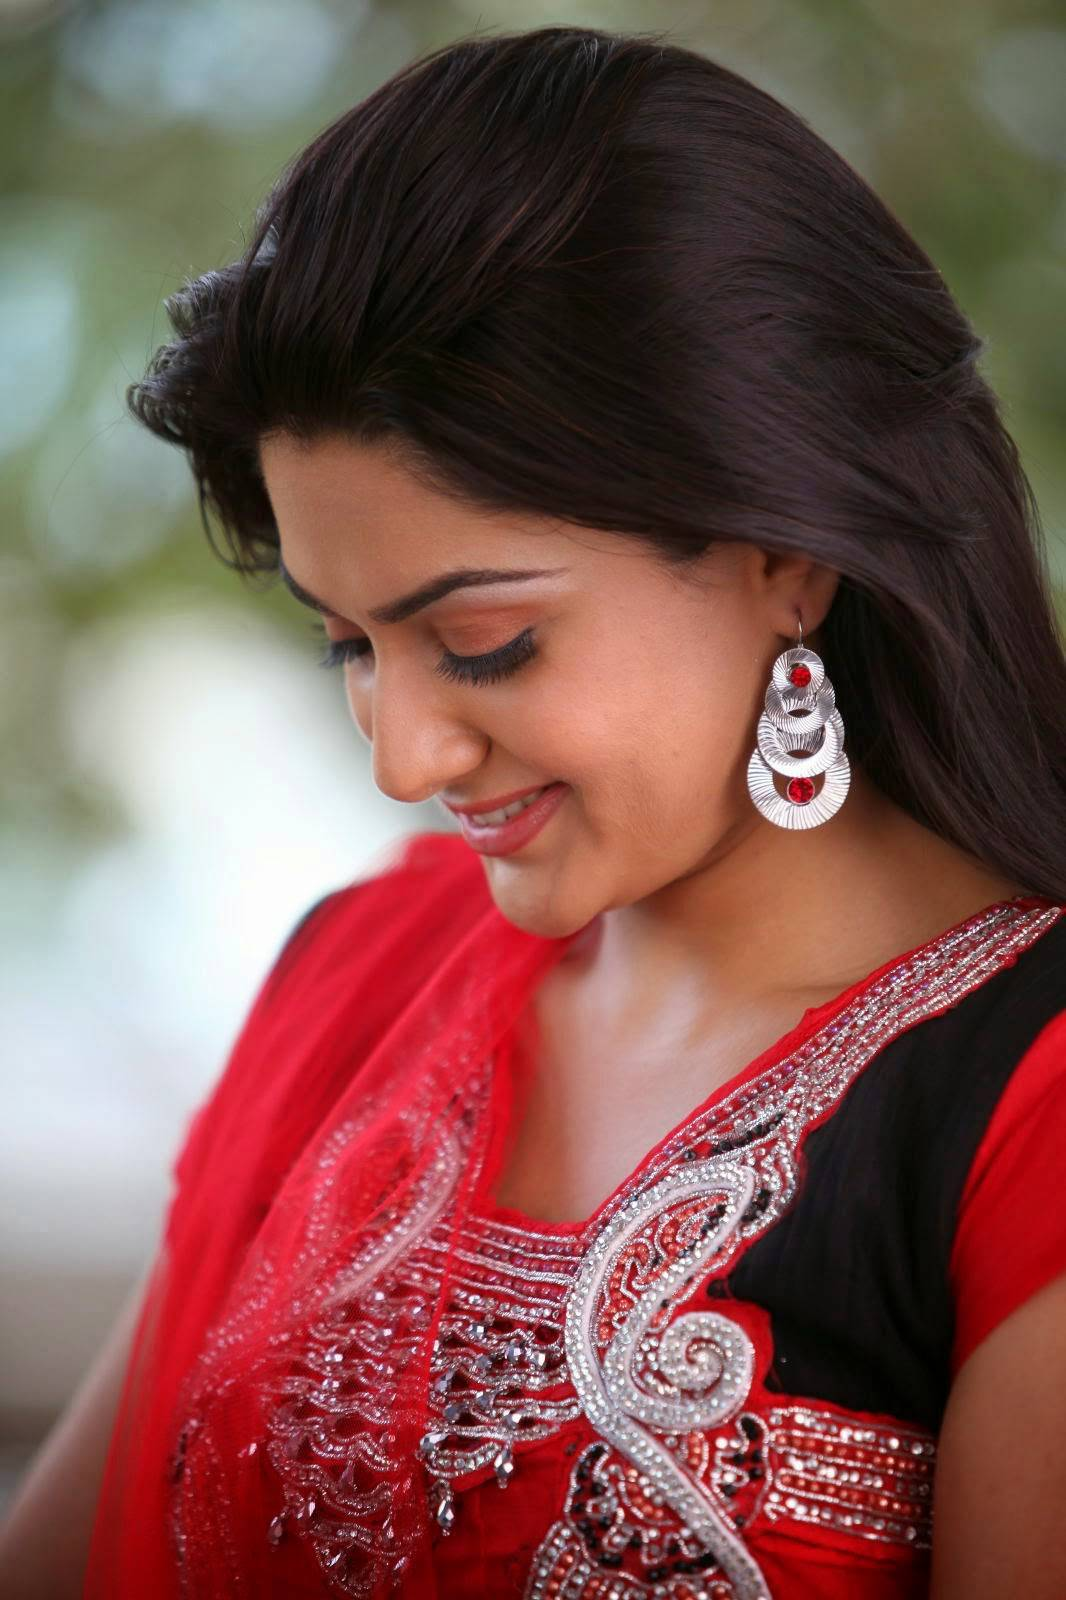 Sakshi Chaudhary Smiling Face Stills In Red Dress